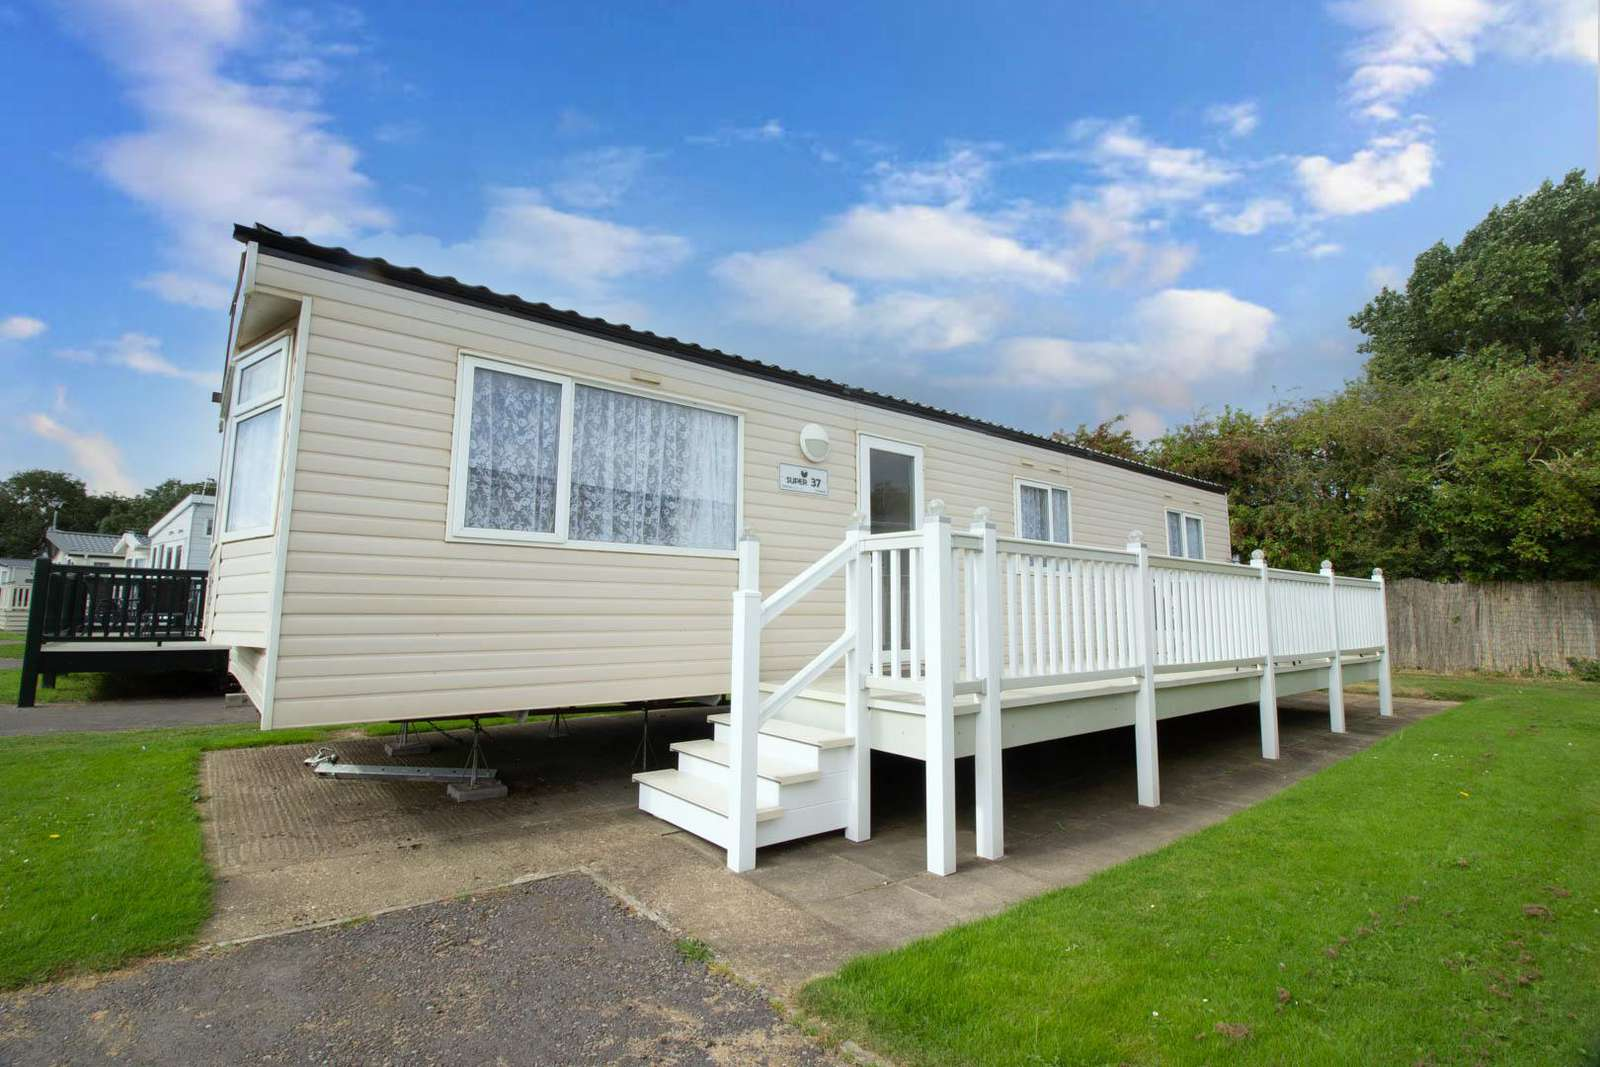 35001JW – Jubilee Way area, 3 bed, 8 berth caravan with decking, D/G and C/H. Diamond rated. - property